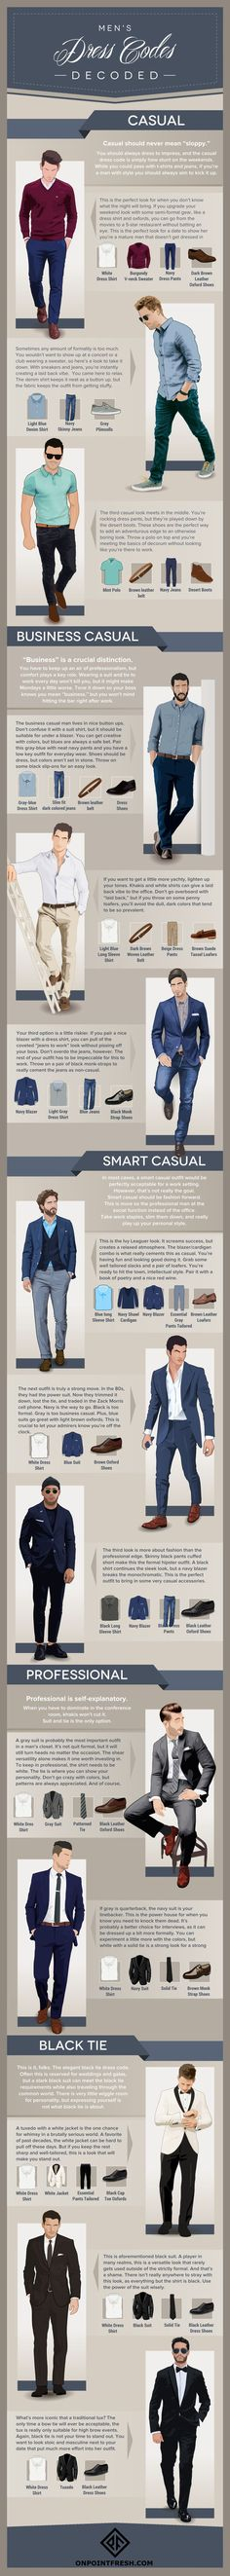 Business Casual For Men - Visual Guide-Business Casual For Men – Visual Guide Men& Dress Codes Infographic Mens fashion Infographic - Fashion Infographic, Style Masculin, Business Casual Men, Business Suits, Smart Casual Men Work, Classy Casual, Classy Style, Herren Outfit, Mode Masculine